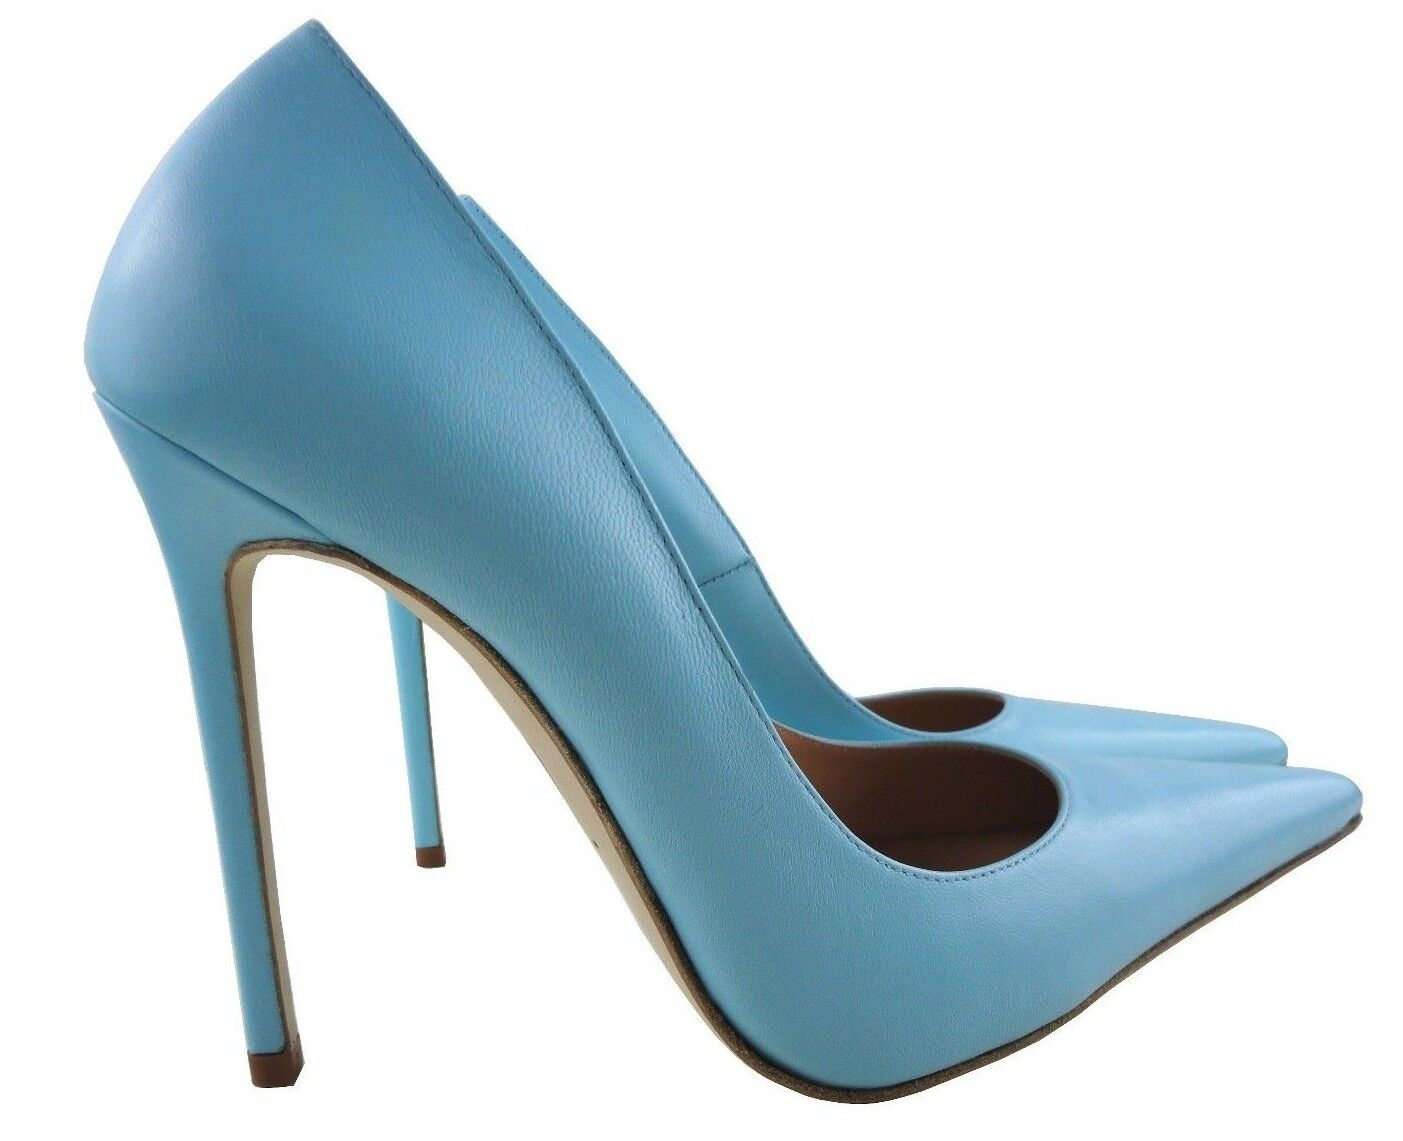 CQ COUTURE ITALY HIGH HEELS POINTY PUMPS SCHUHE DECOLTE LEATHER SKY blueE blue 45